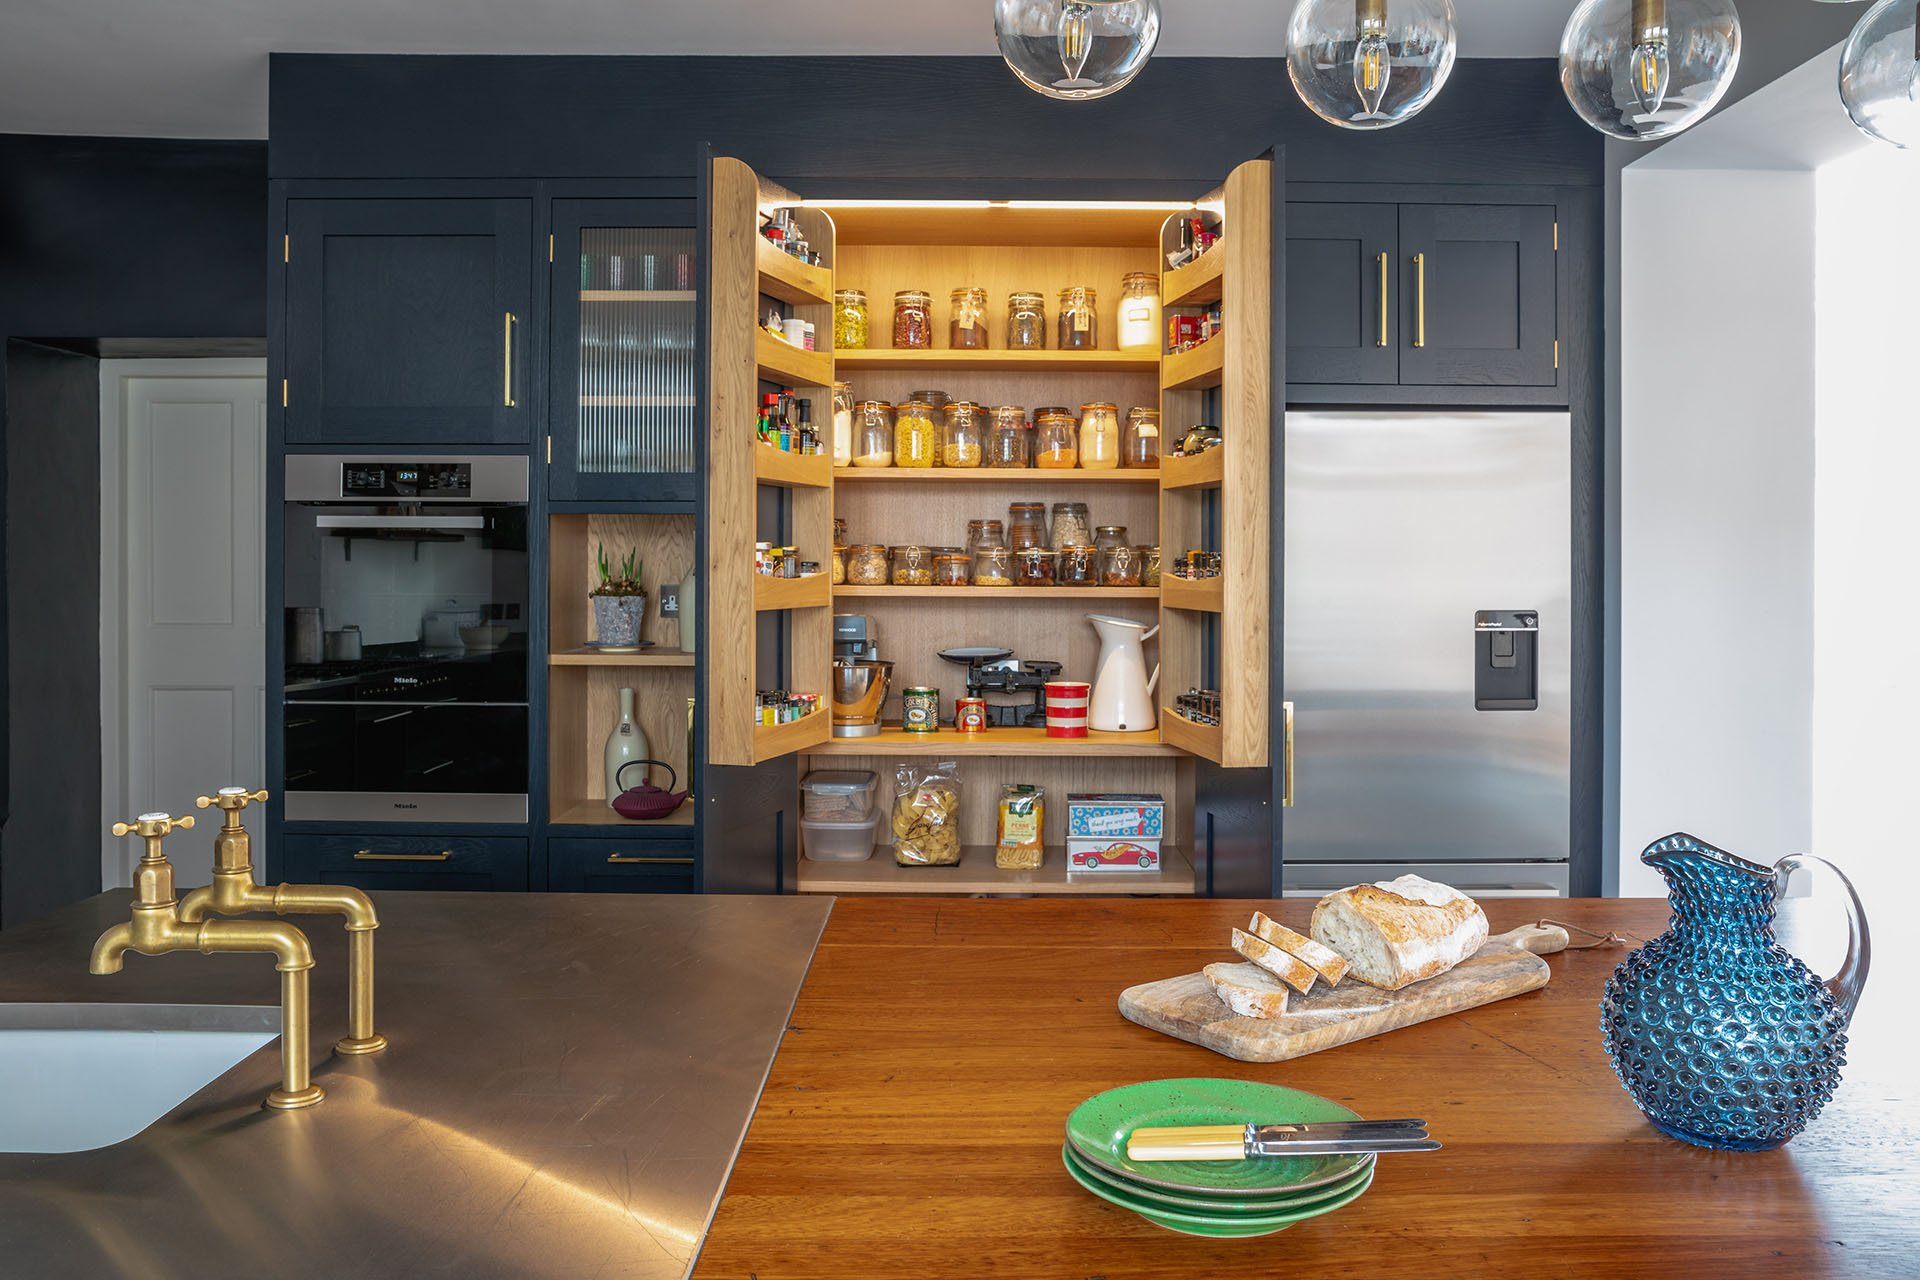 Eco Extension Shaker Kitchen with light up pantry, sourdough bread and exposed appliances